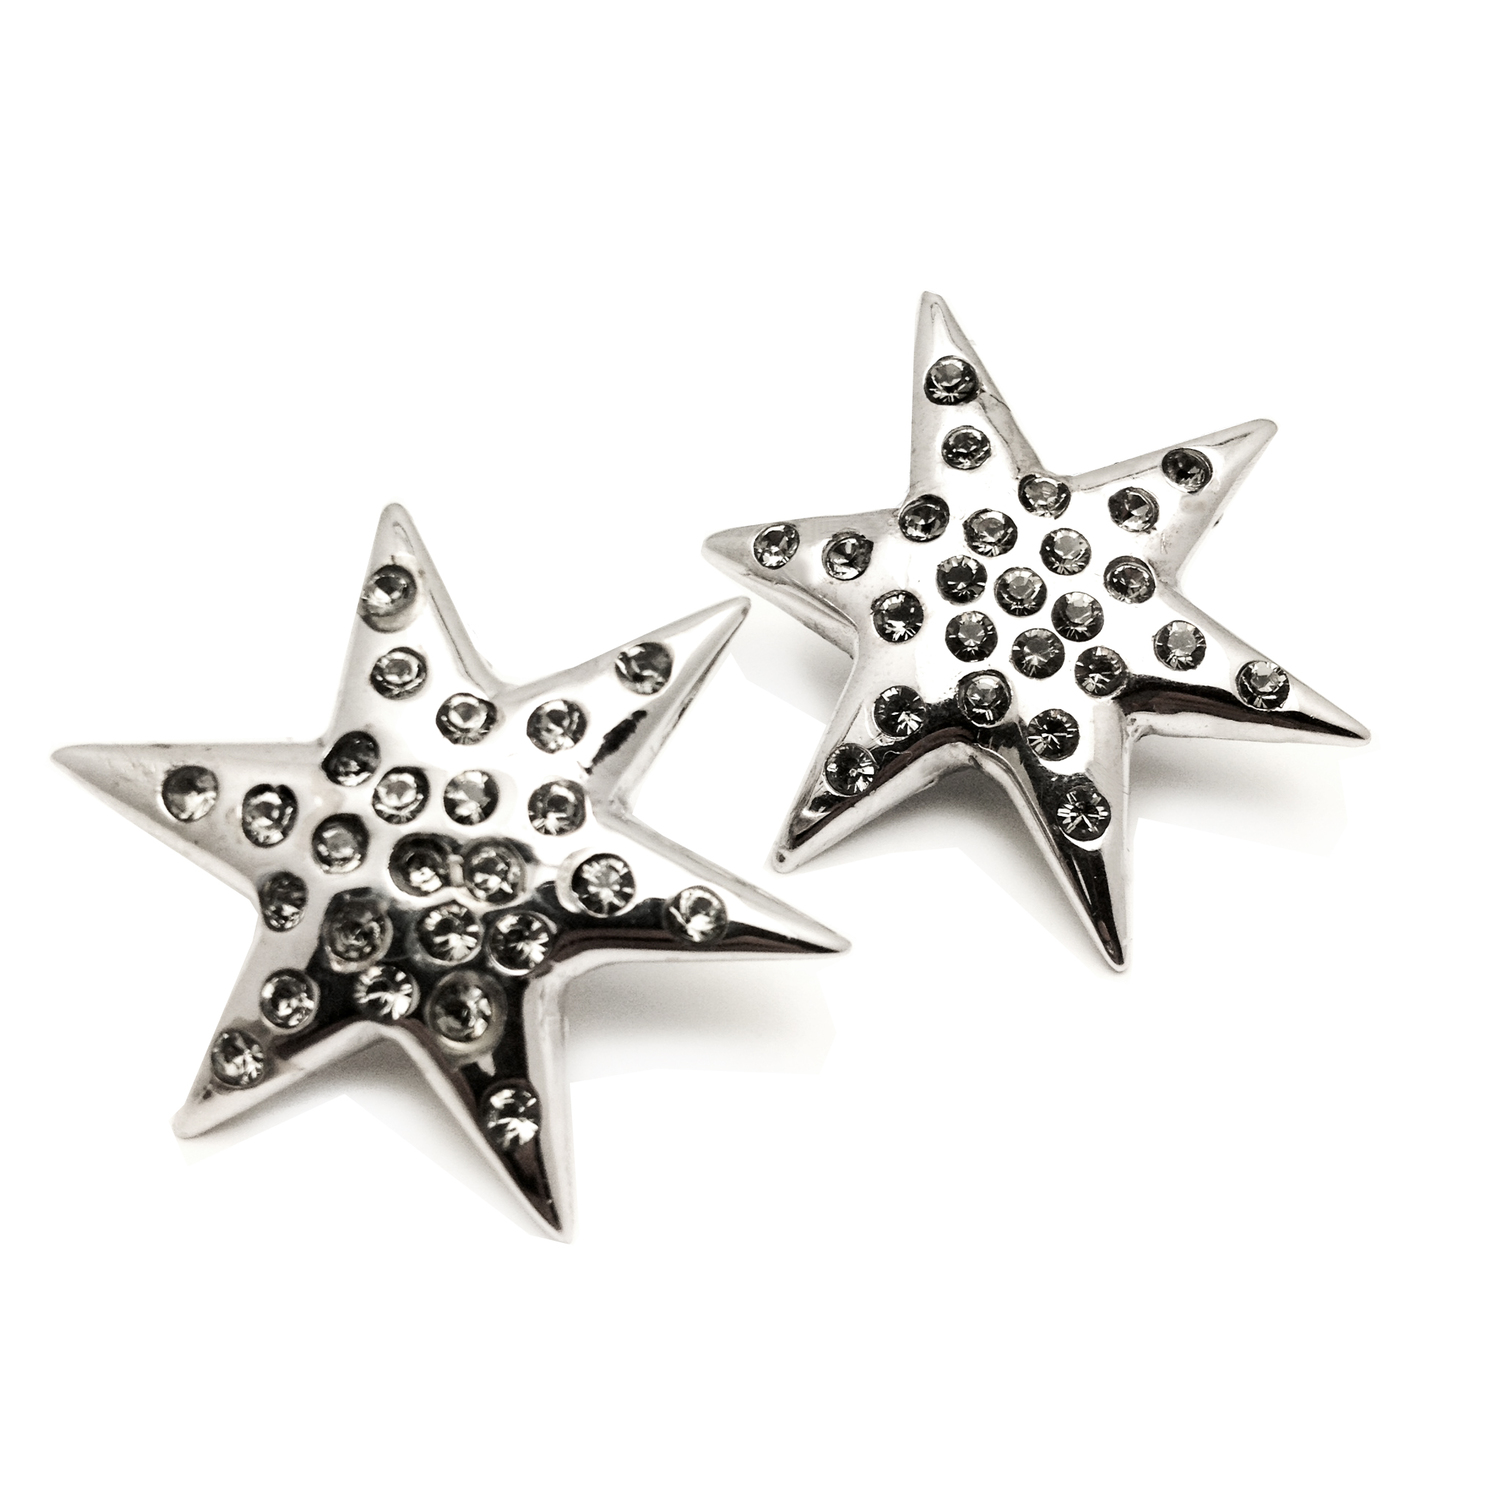 6 POINTED STAR PAVE' EARRINGS